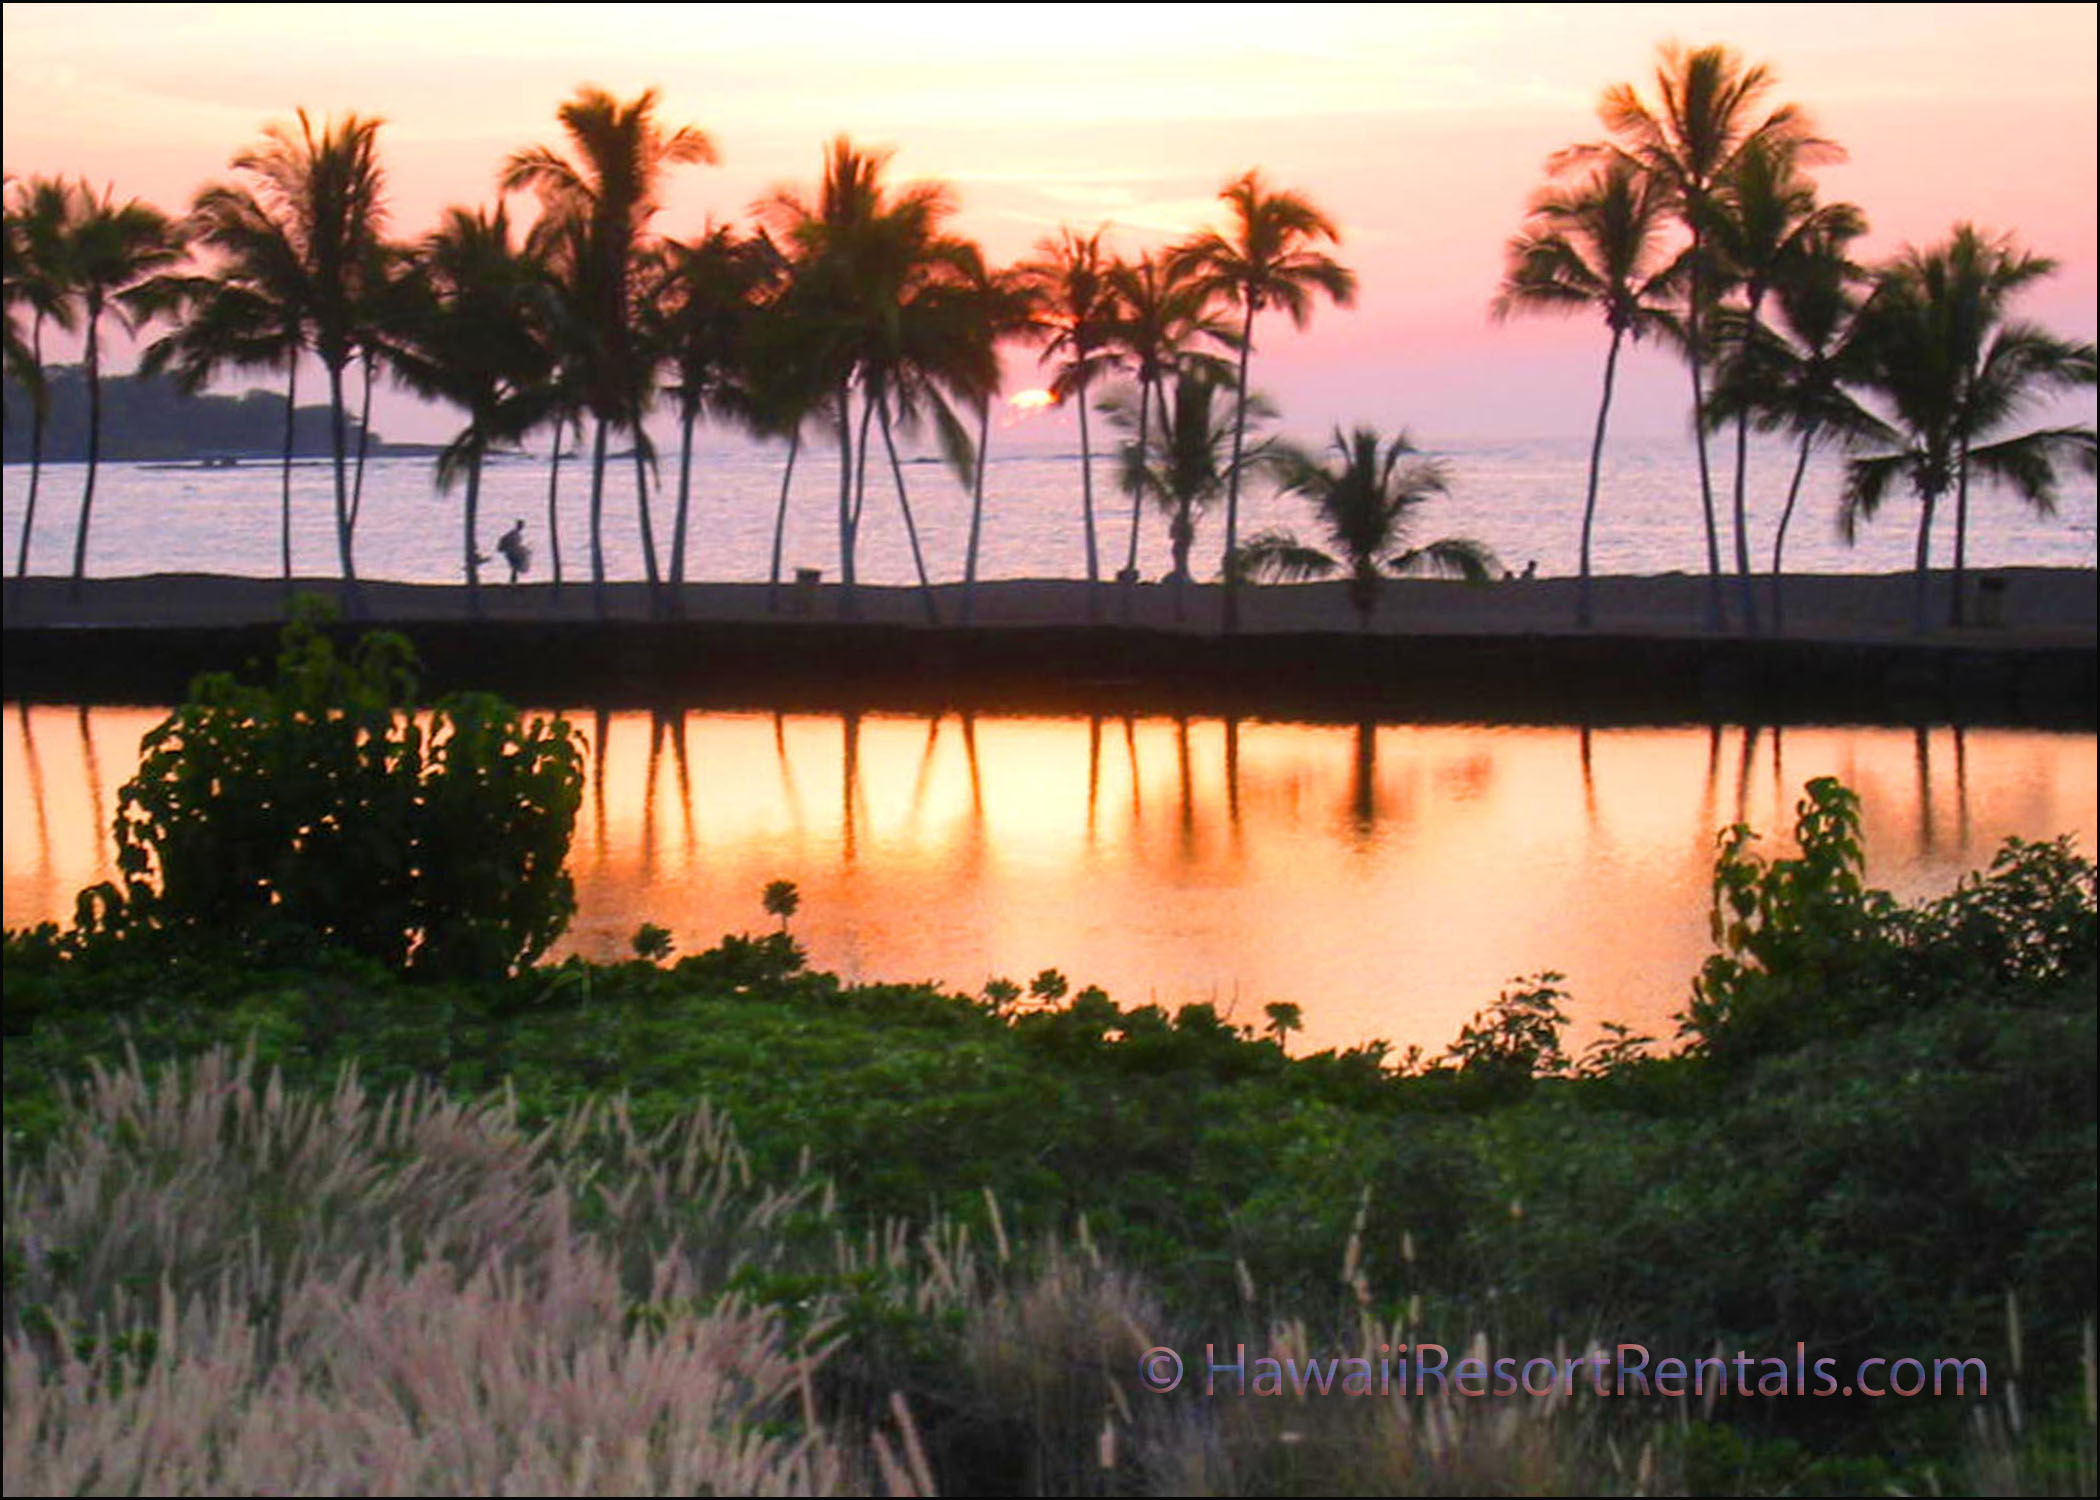 A Bay's ancient royal fishpond, palms and ocean at sunset